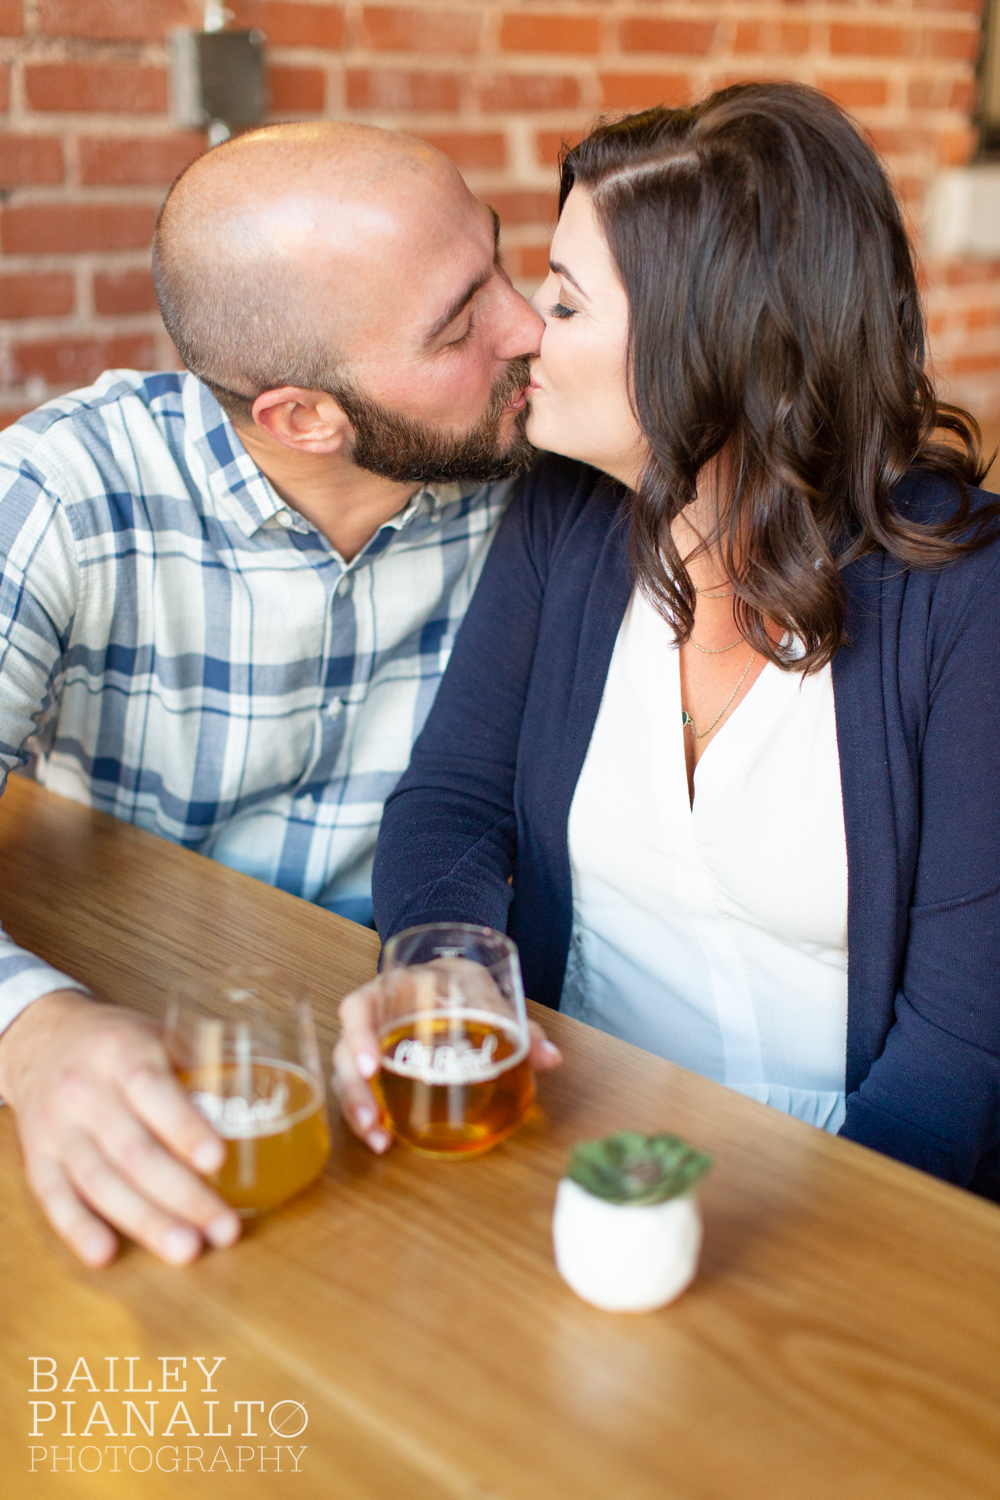 Navy & Cream Casual Spring Downtown Brewery Engagement Session Inspiration | City Barrel | Kansas City, MO